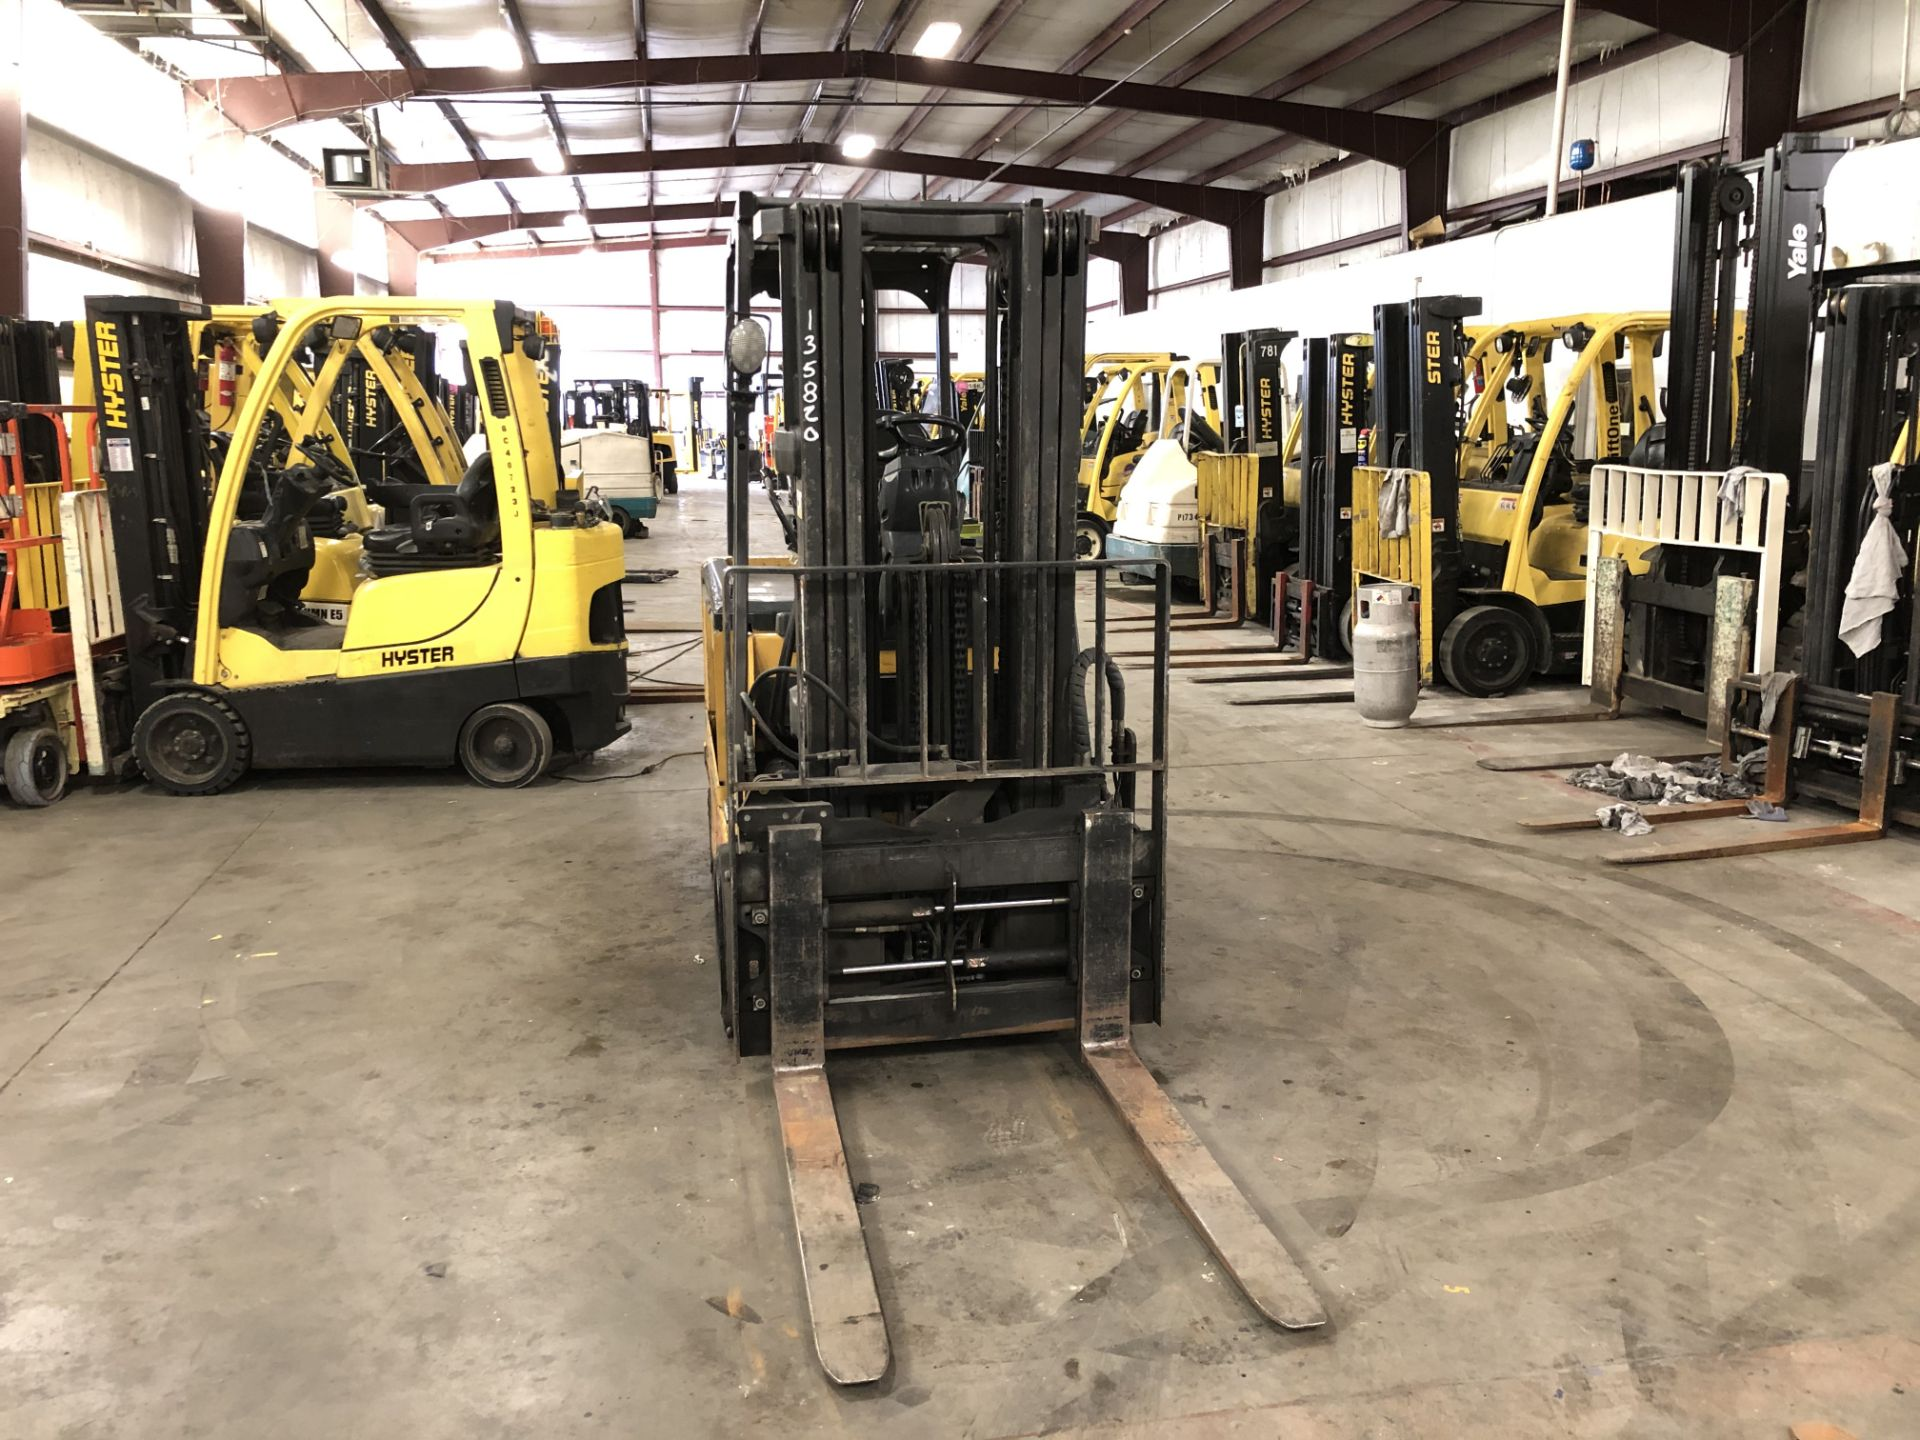 Lot 24 - 2008 CATERPILLAR 6,000 LB. ELECTRIC FORKLIFT, 36V, MODEL E6000-AC, 3-STAGE, SIDESHIFT, 3,292 HRS